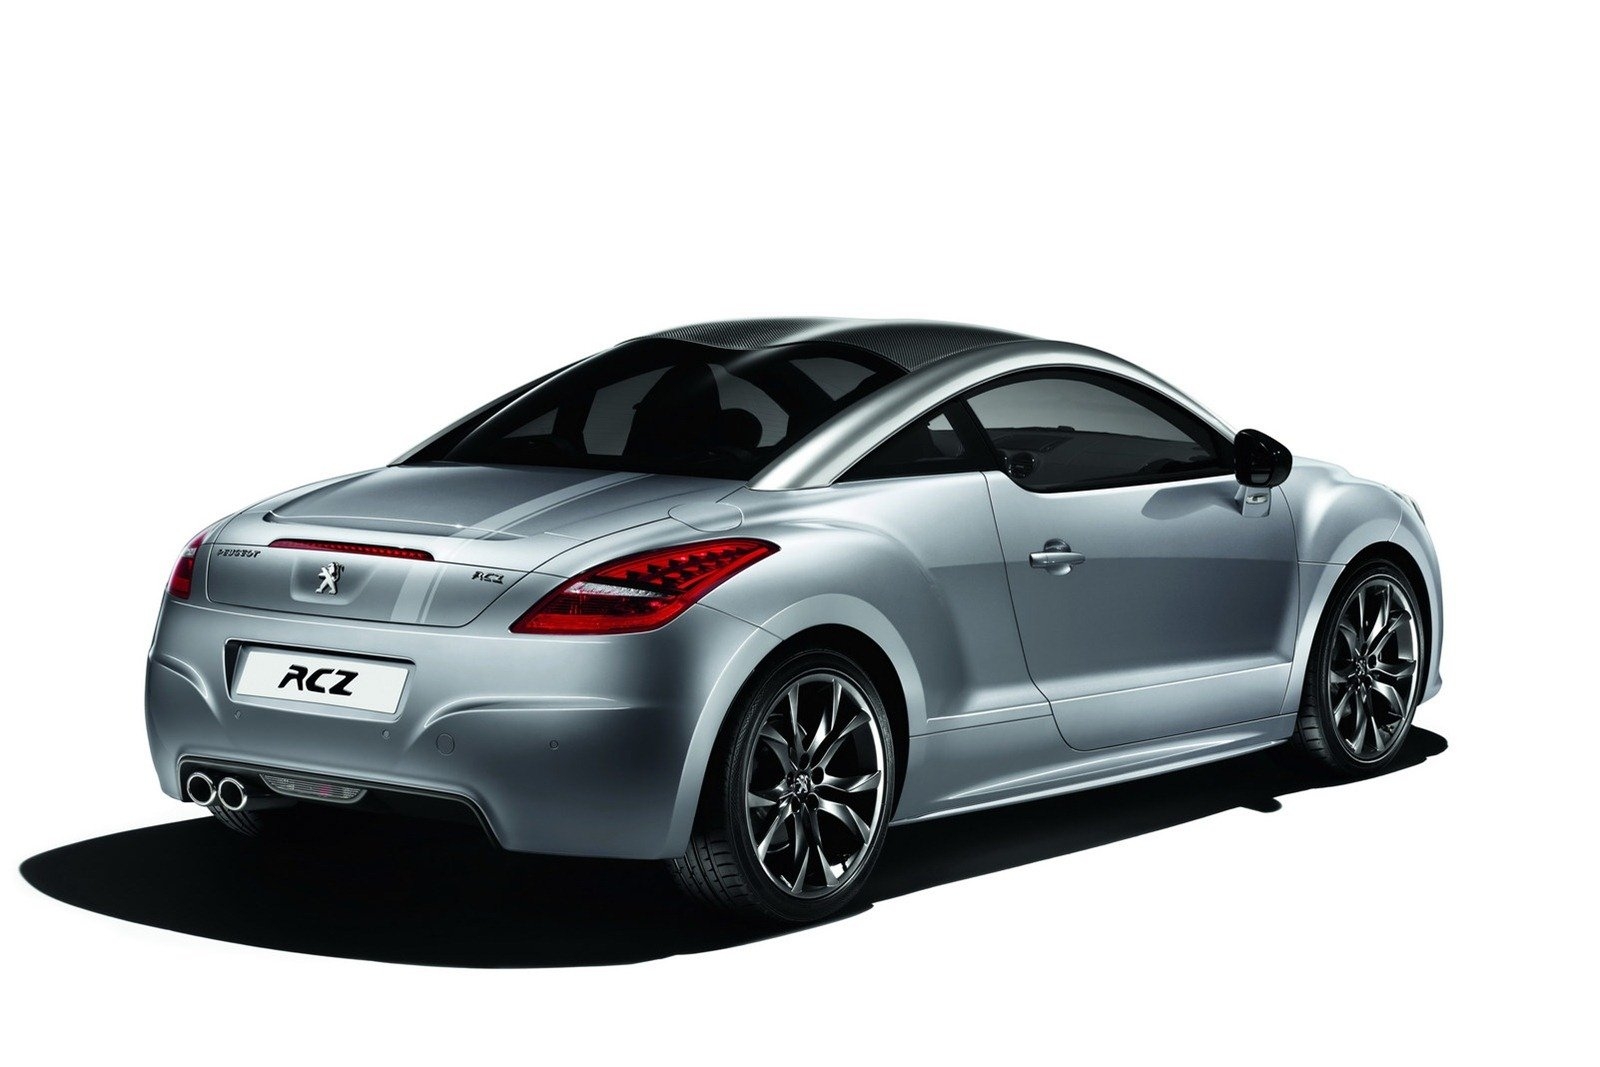 2012 peugeot rcz onyx review top speed. Black Bedroom Furniture Sets. Home Design Ideas